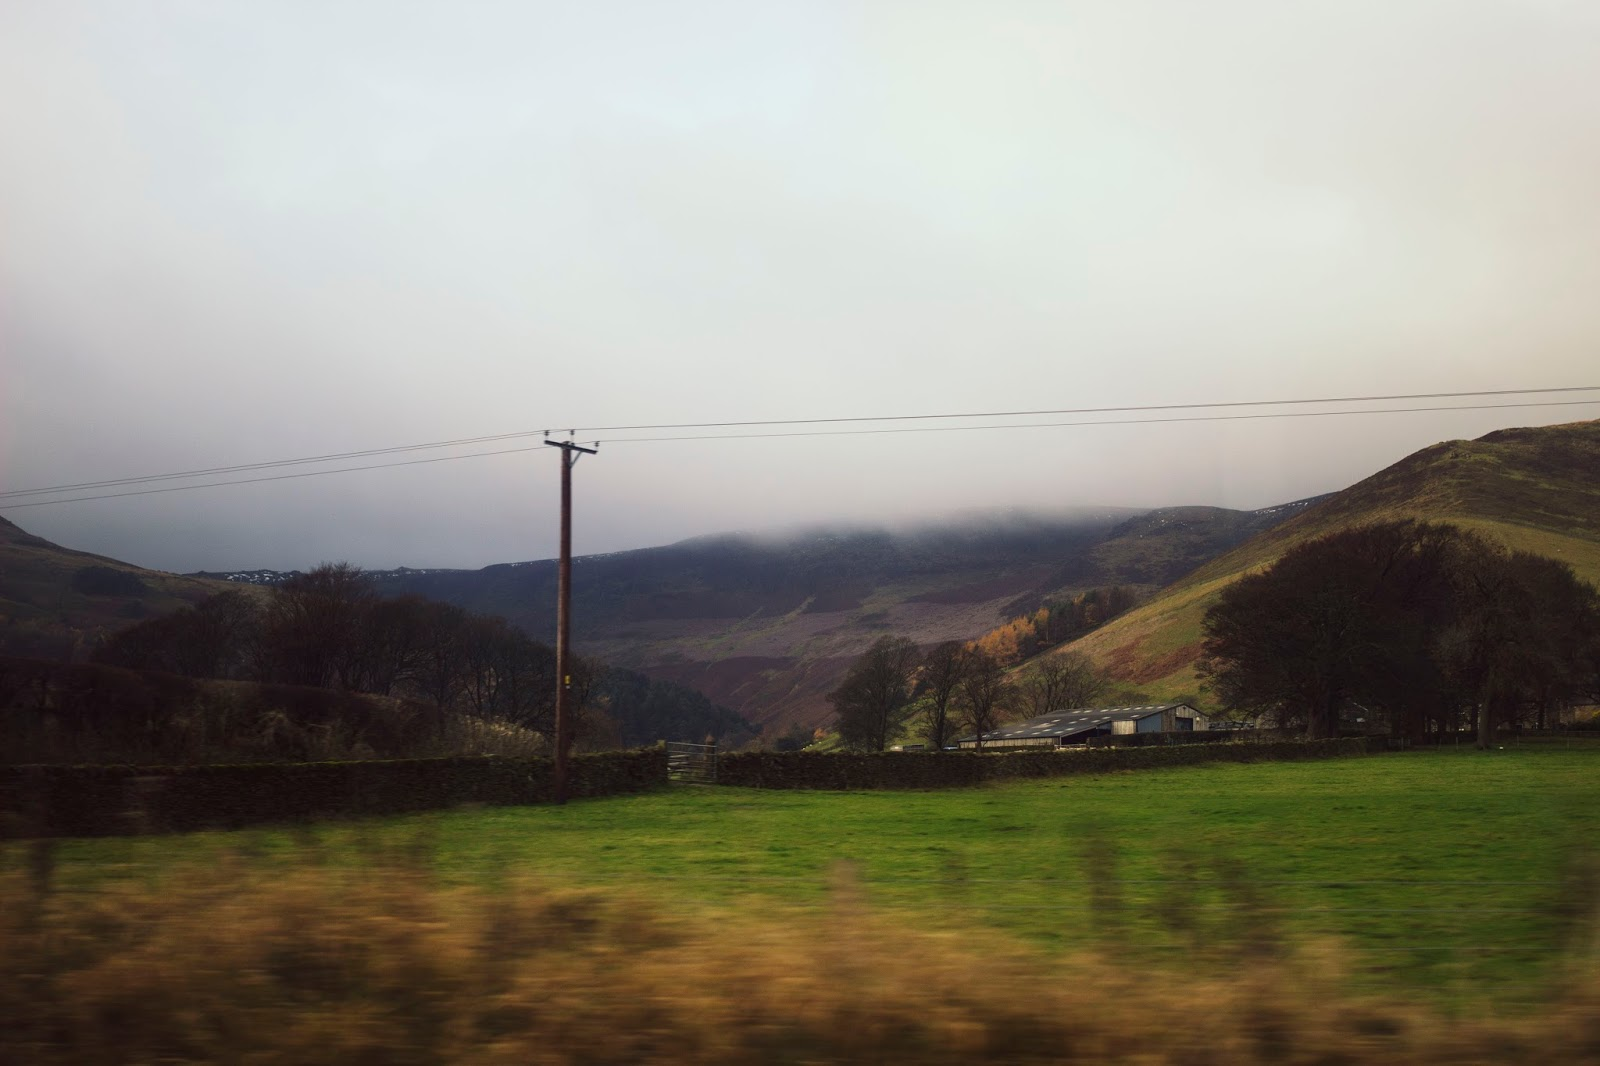 Hope Valley, View From a Train, East Midlands Trains, Katie Writes, Peak District, Pretty countryside, Countryside, Derbyshire Dales,